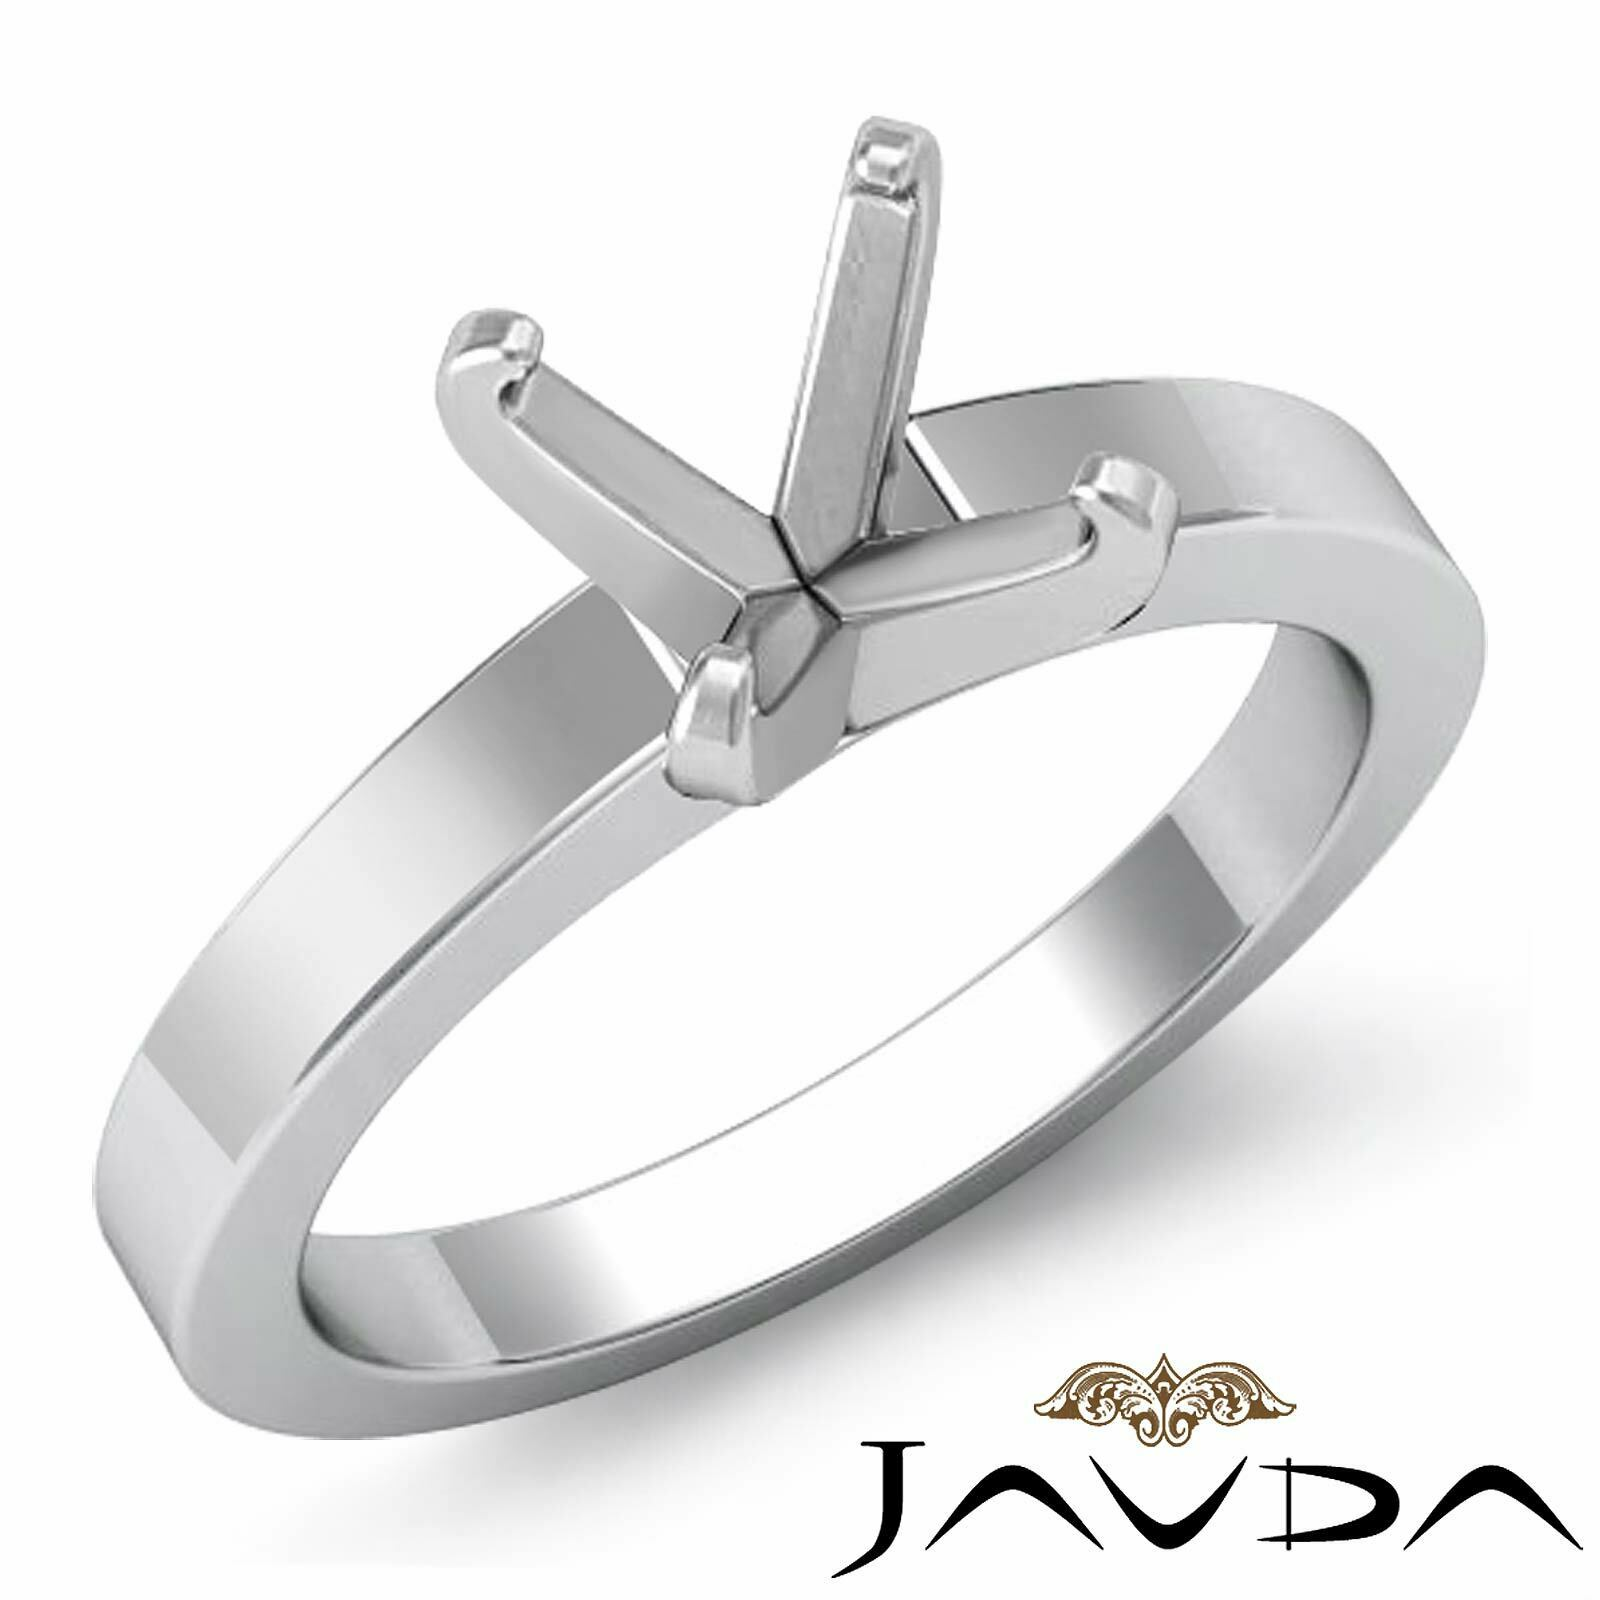 5g. Diamond Classic Simple Solitaire Engagement Ring Setting 3mm. Semi Mount